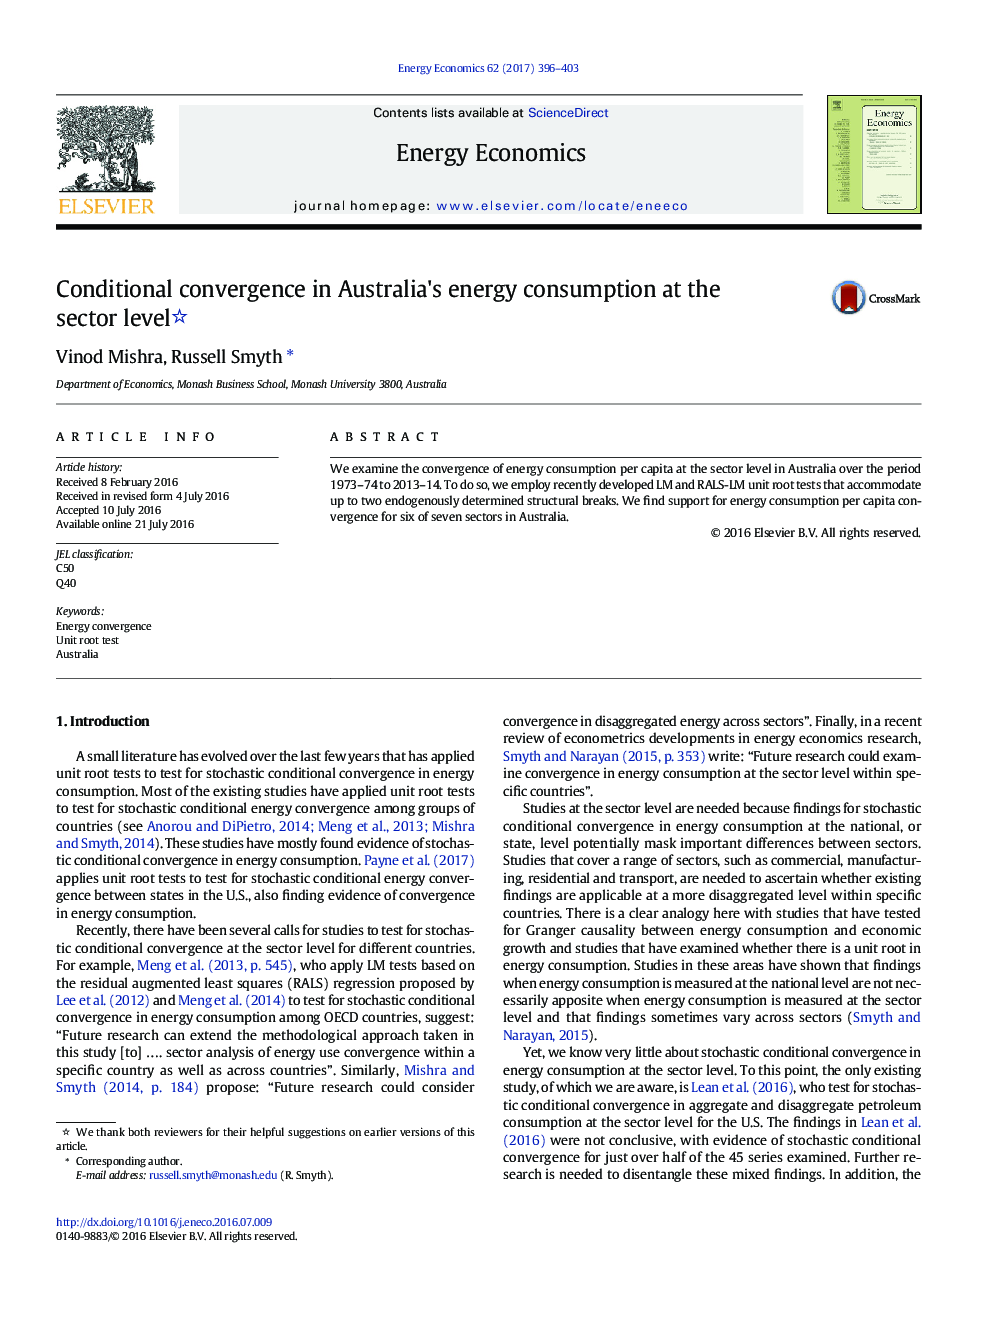 Conditional convergence in Australia's energy consumption at the sector level